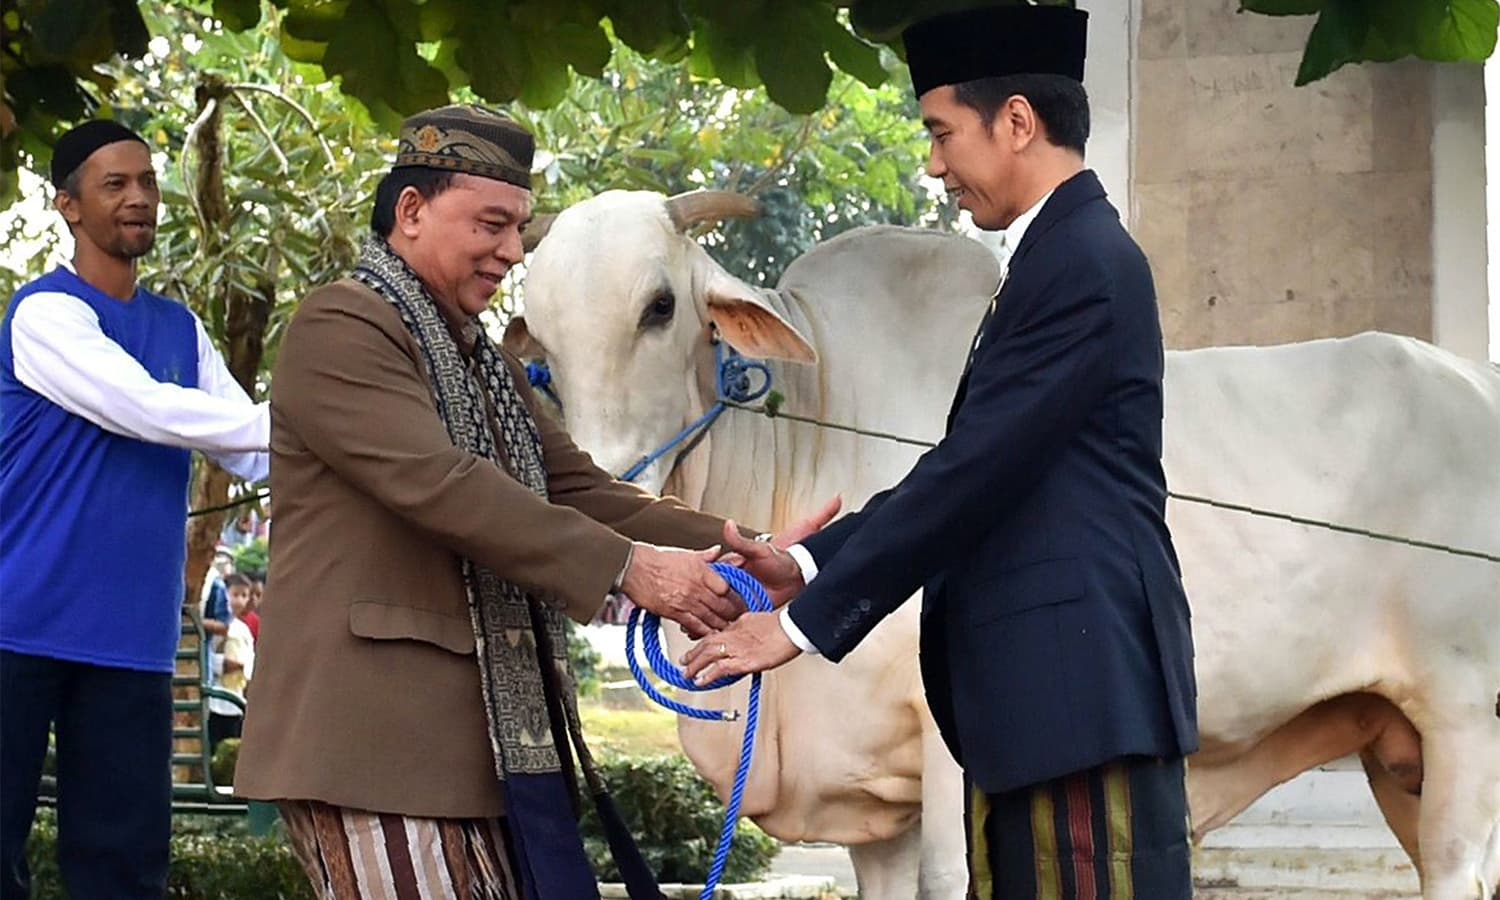 This handout from the Indonesian Presidential Palace shows Indonesia's President Joko Widodo (R) handing over cattle to be sacrificed after an Eidul Azha prayer in Sukabumi, West Java province.—AFP